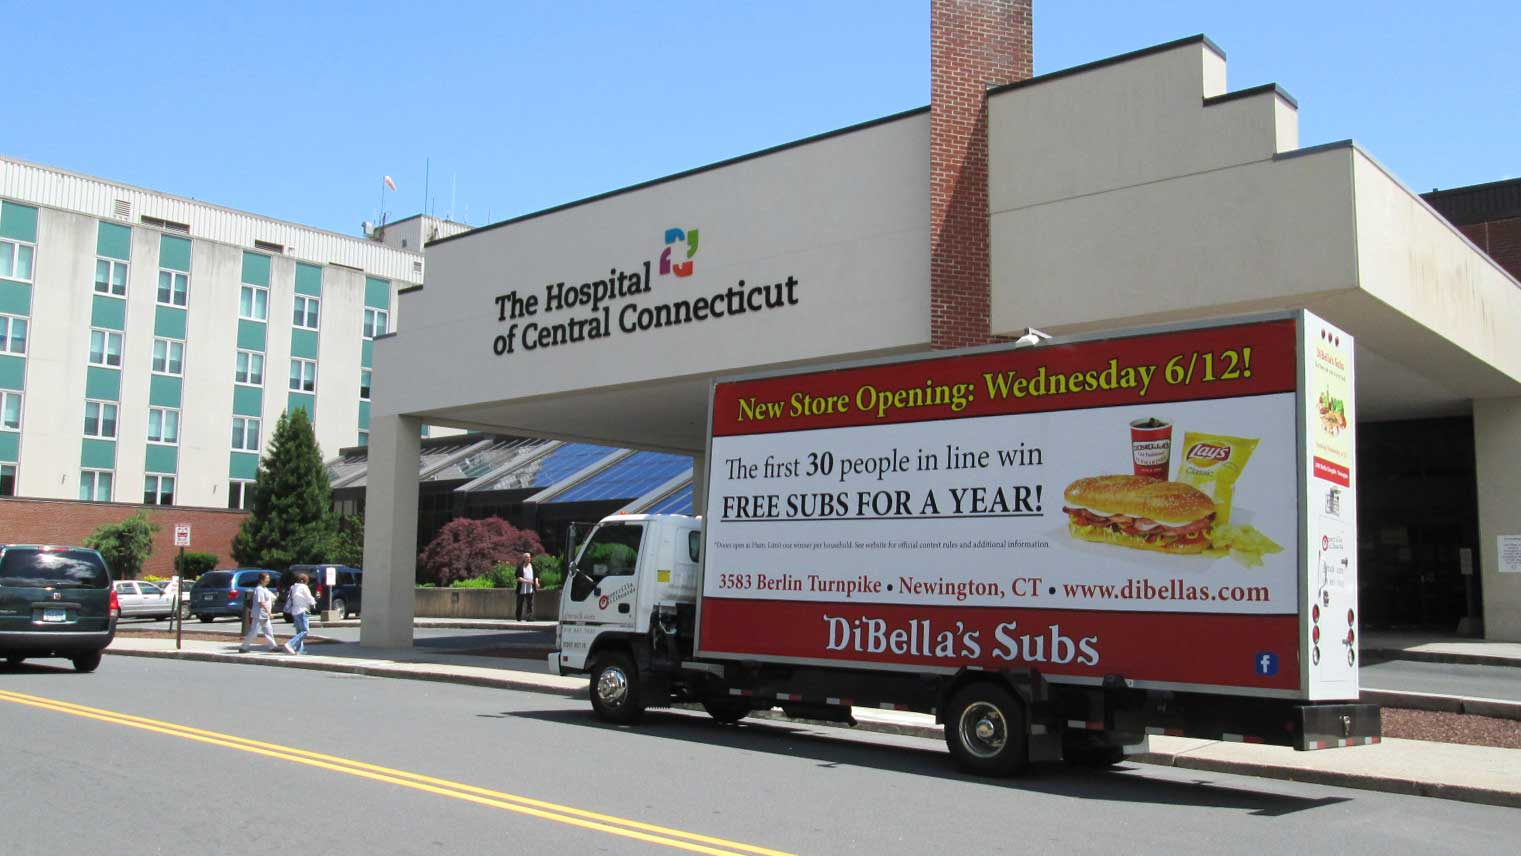 Billboard truck featuring a New Restaurant Opening Ad